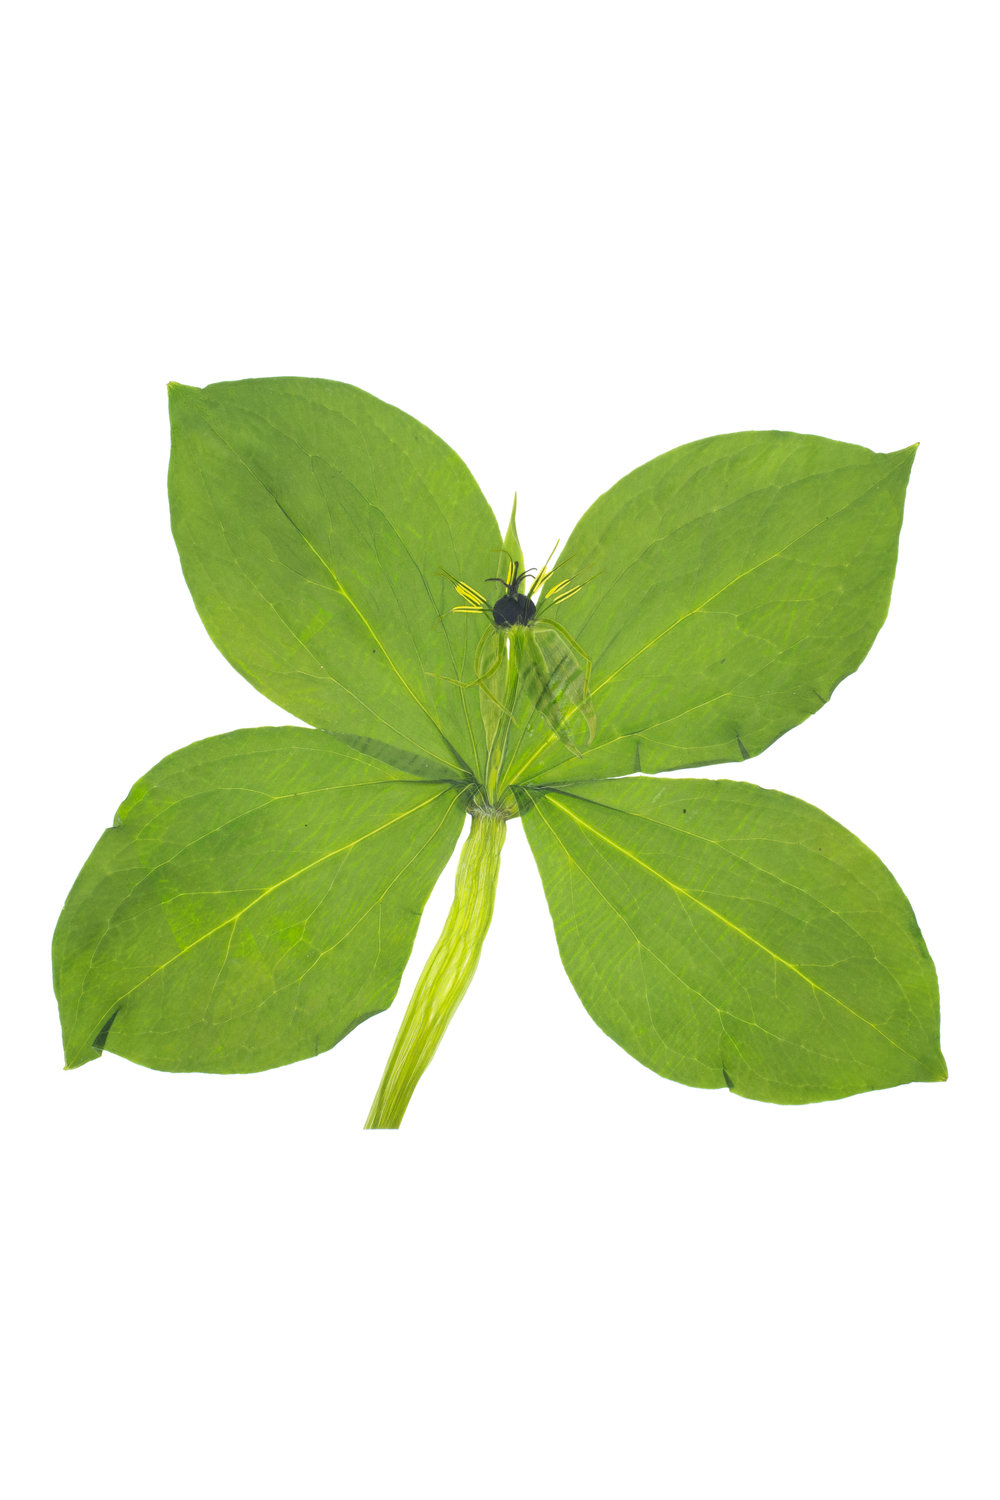 Herb-Paris / Paris quadrifolia